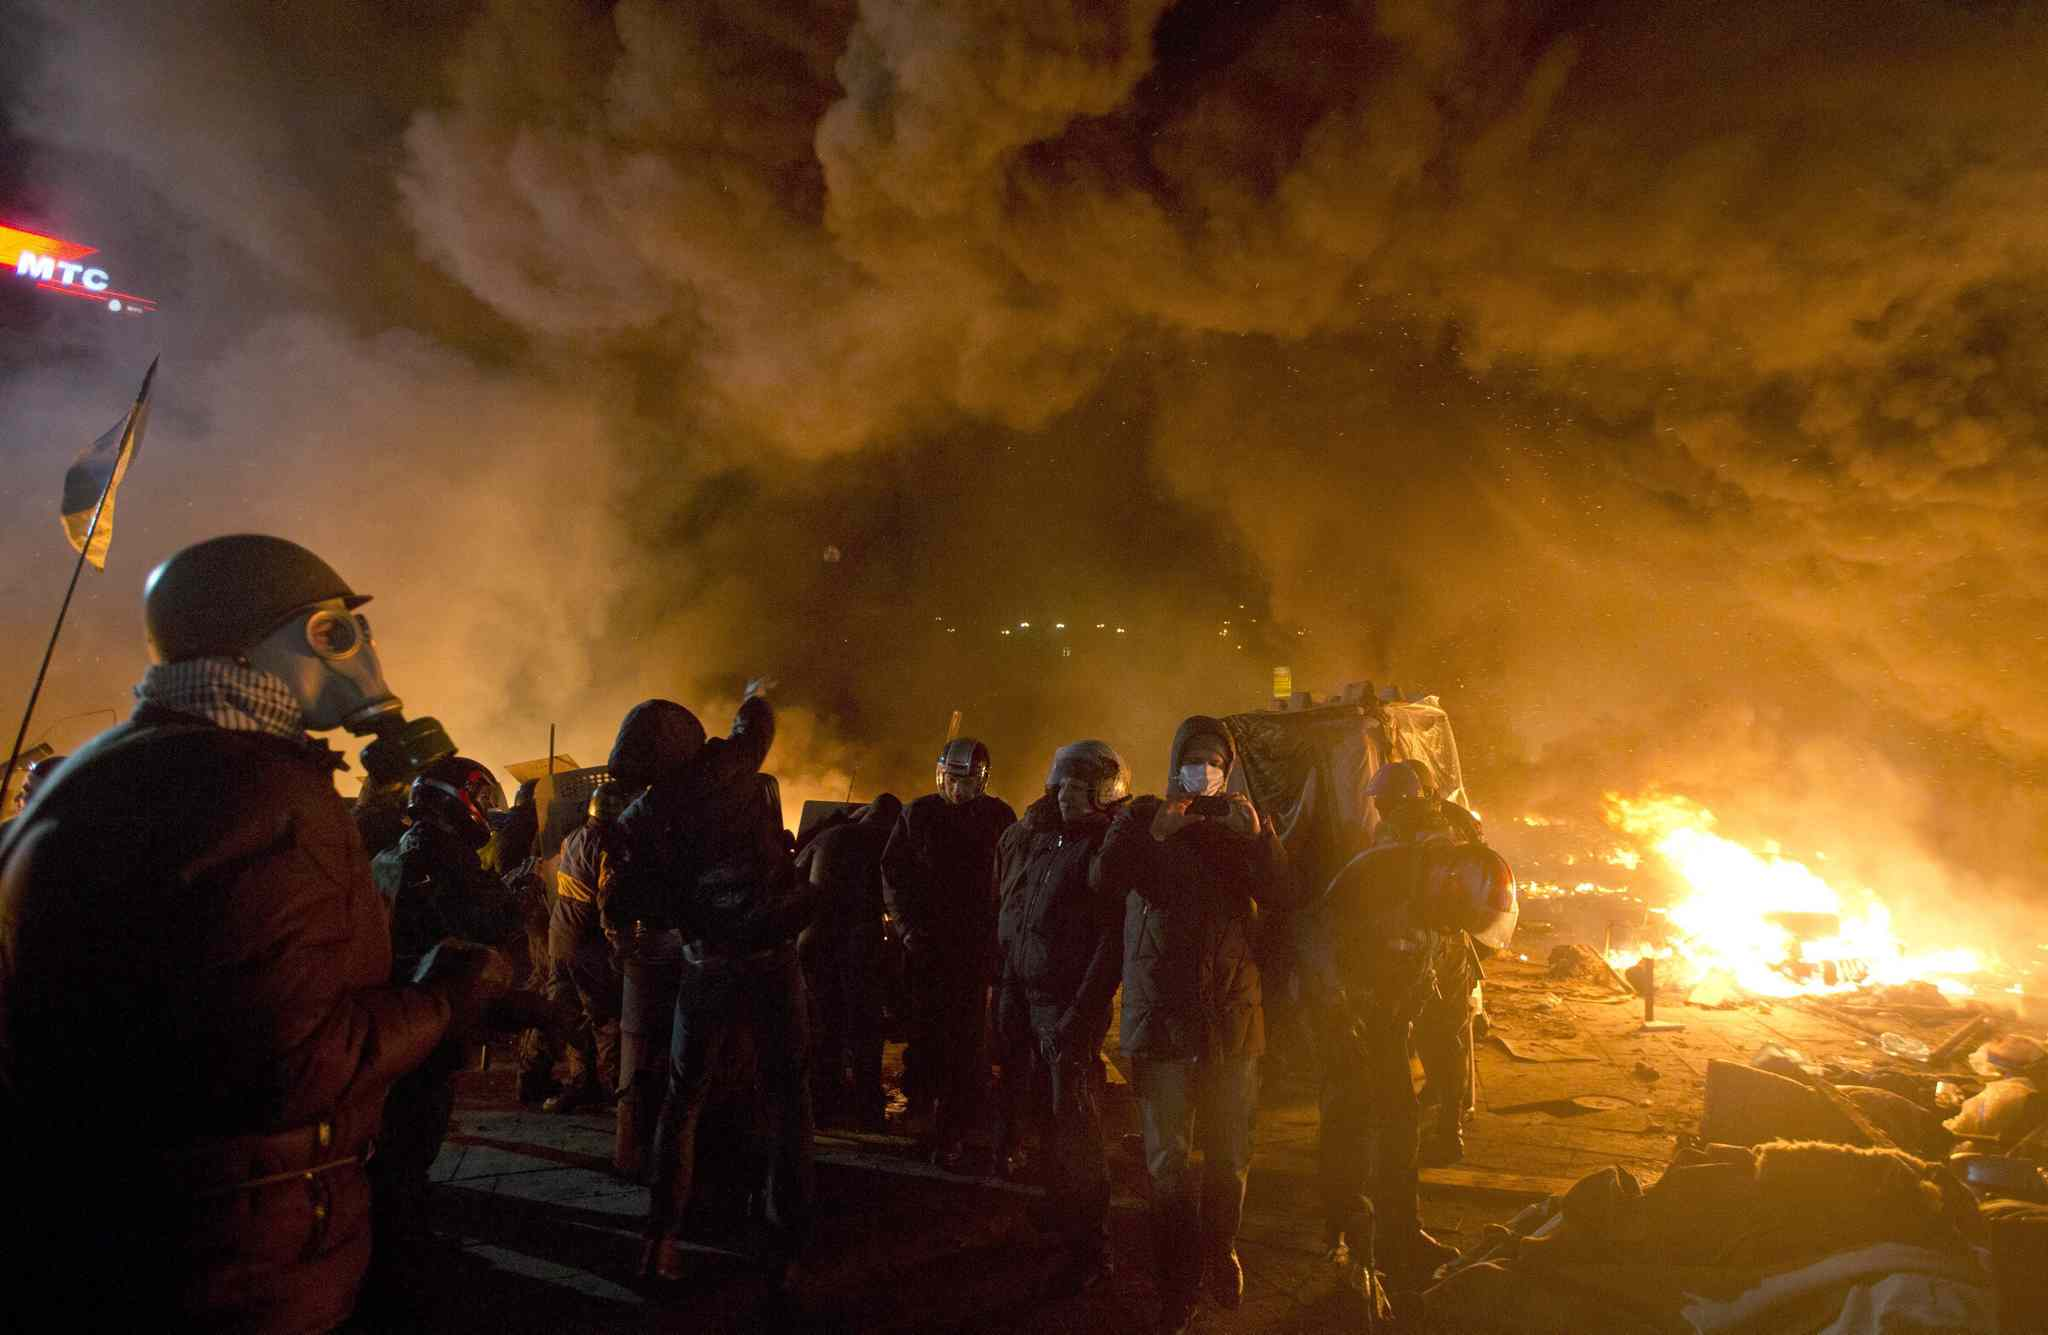 Anti-government protesters clash with riot police in Kiev's Independence Square, the epicentre of the country's current unrest. Thousands of police armed with stun grenades and water cannons attacked the large opposition camp in Ukraine's capital on Tuesday that has been the centre of nearly three months of anti-government protests after several people were killed in street clashes.